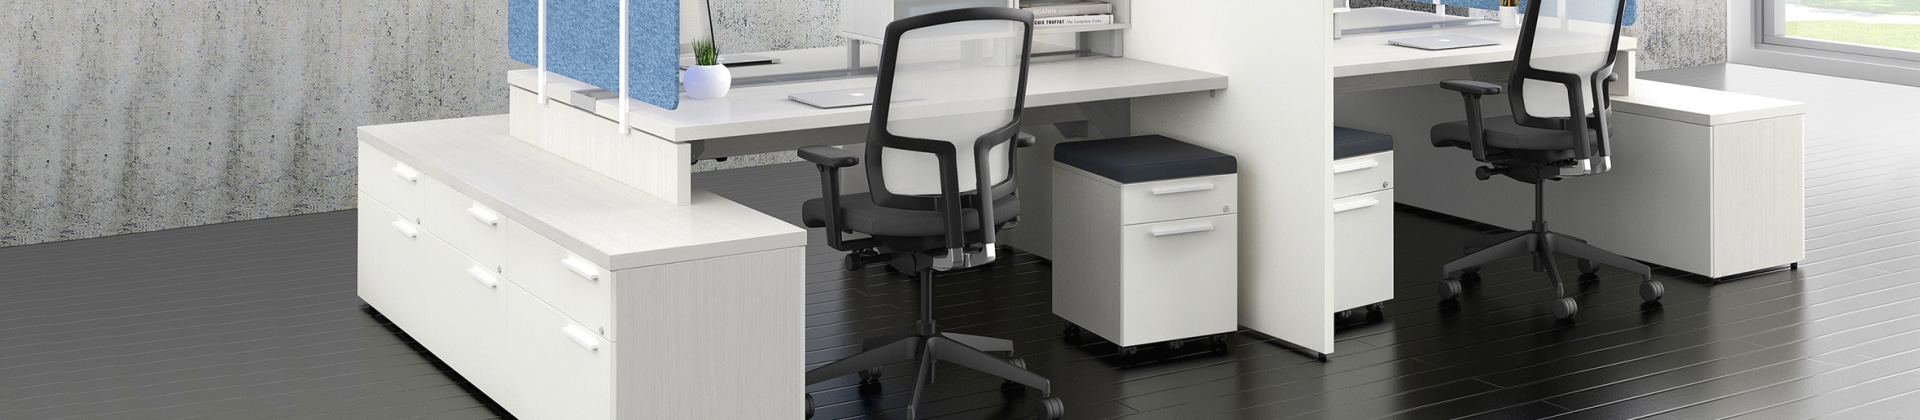 7 Best Office Chairs Under 300 Oct 2020 Reviews Buying Guide